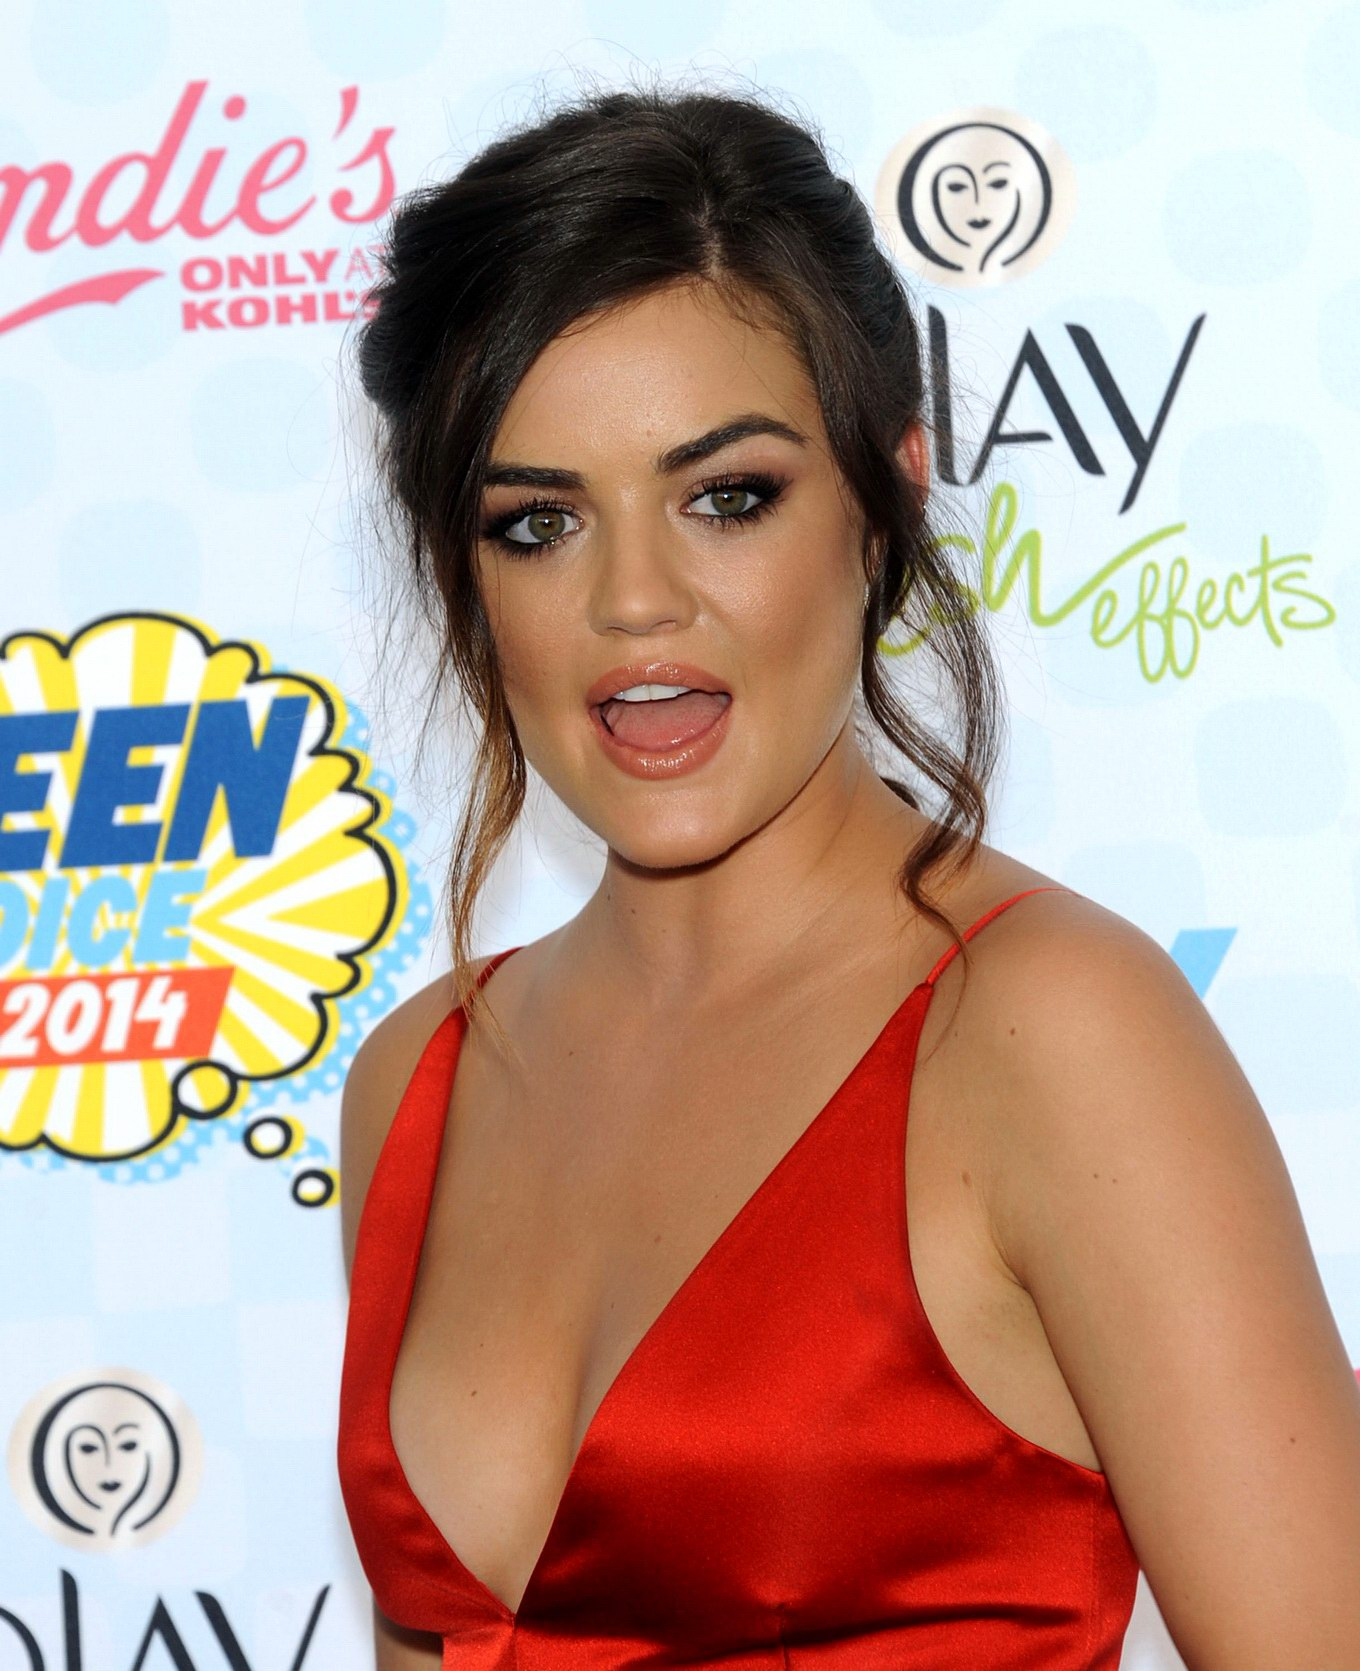 Clip. lucy hale porn pics spying